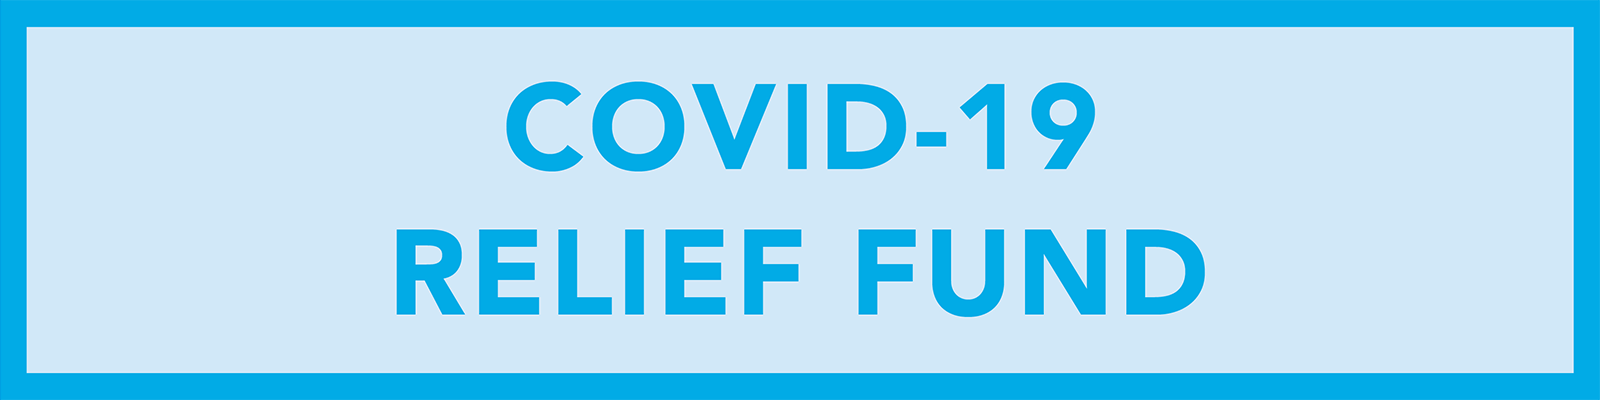 COVID-19 Relief Fund banner